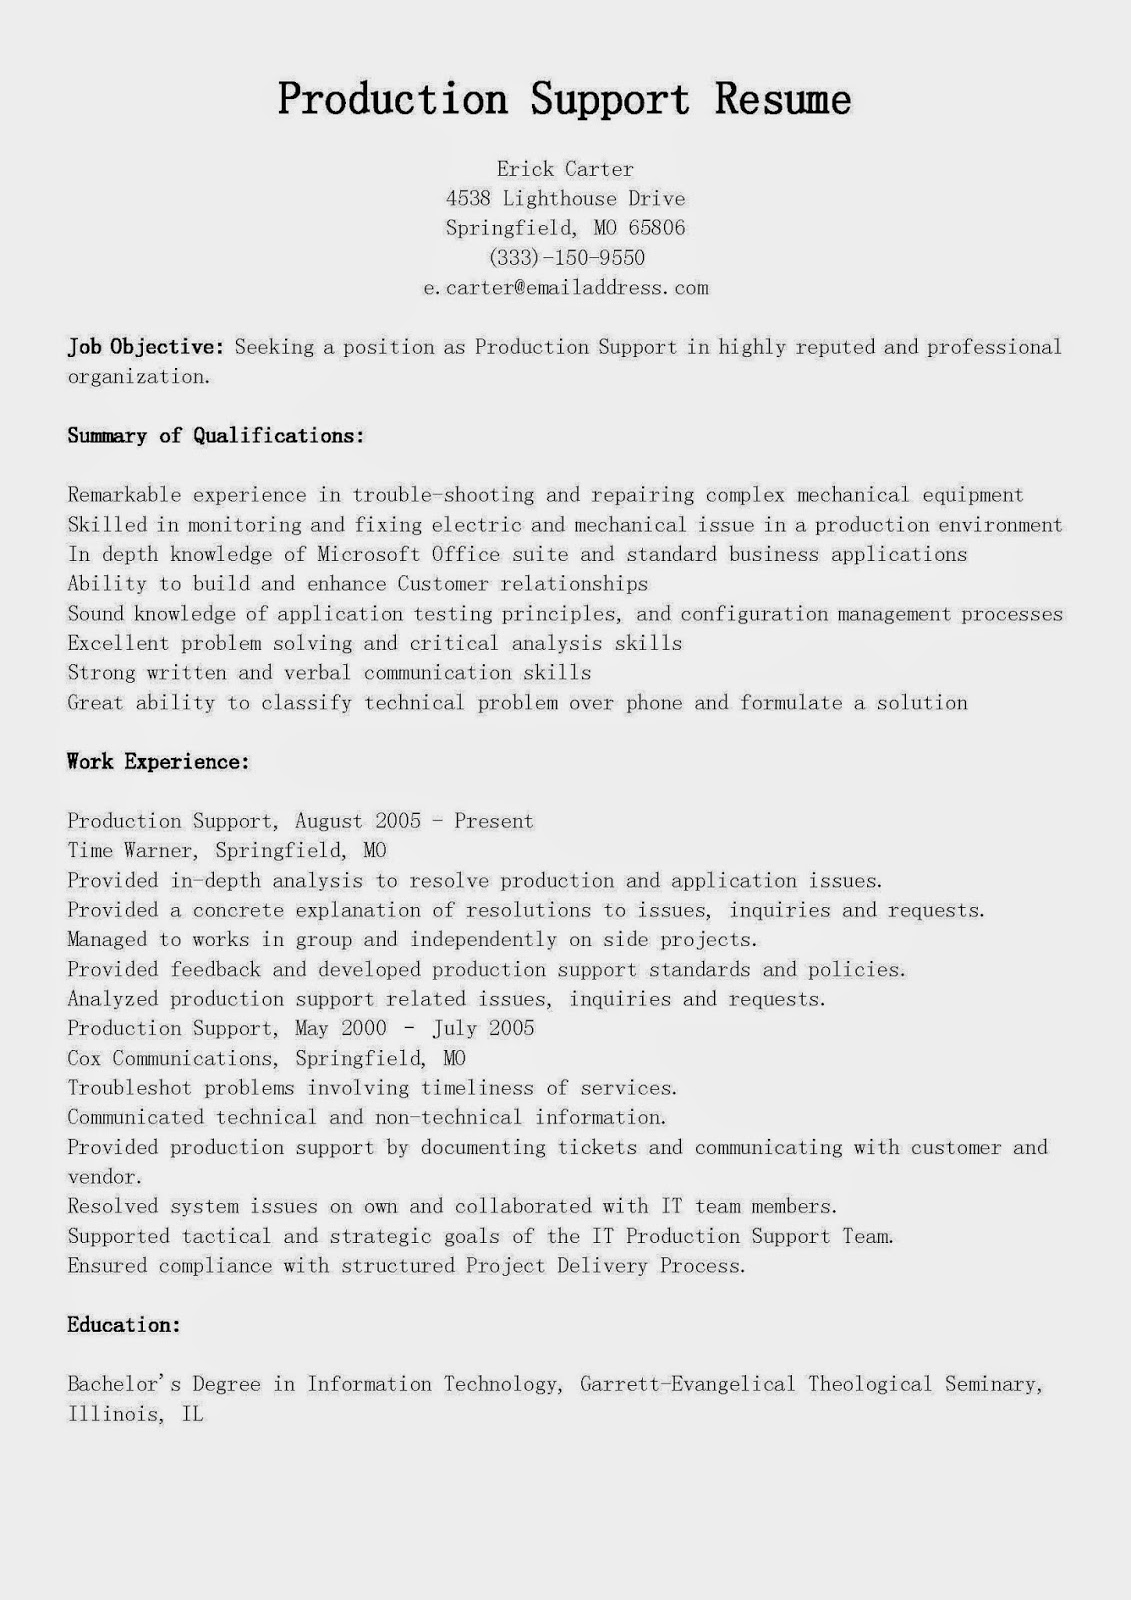 doc 6309 configuration management specialist resume